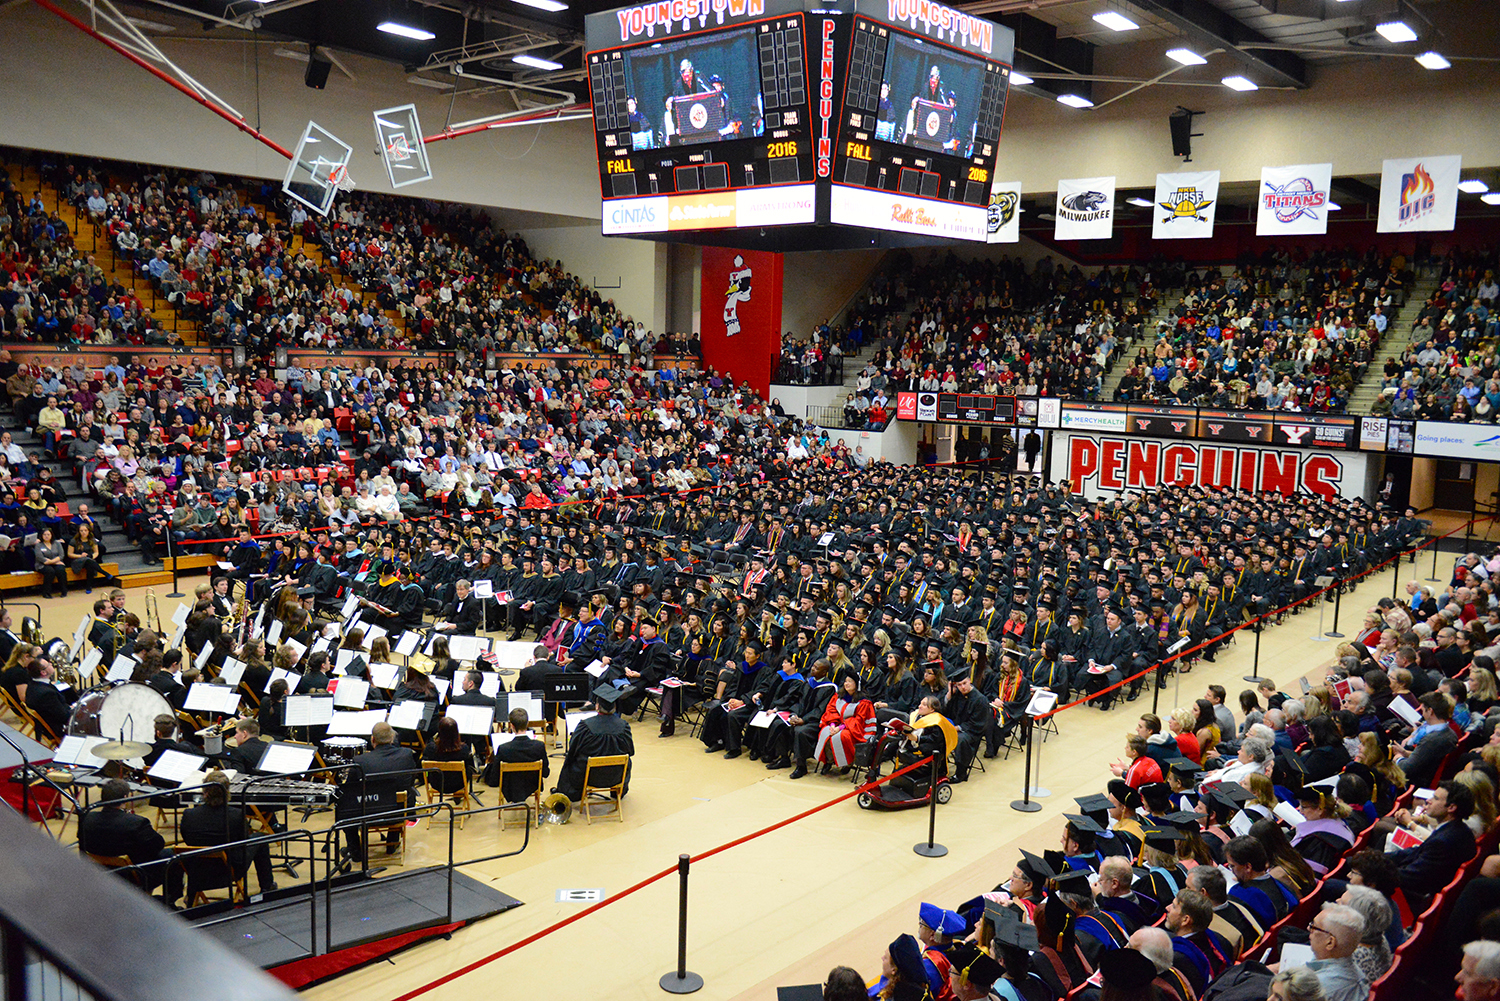 2016 fall commencement